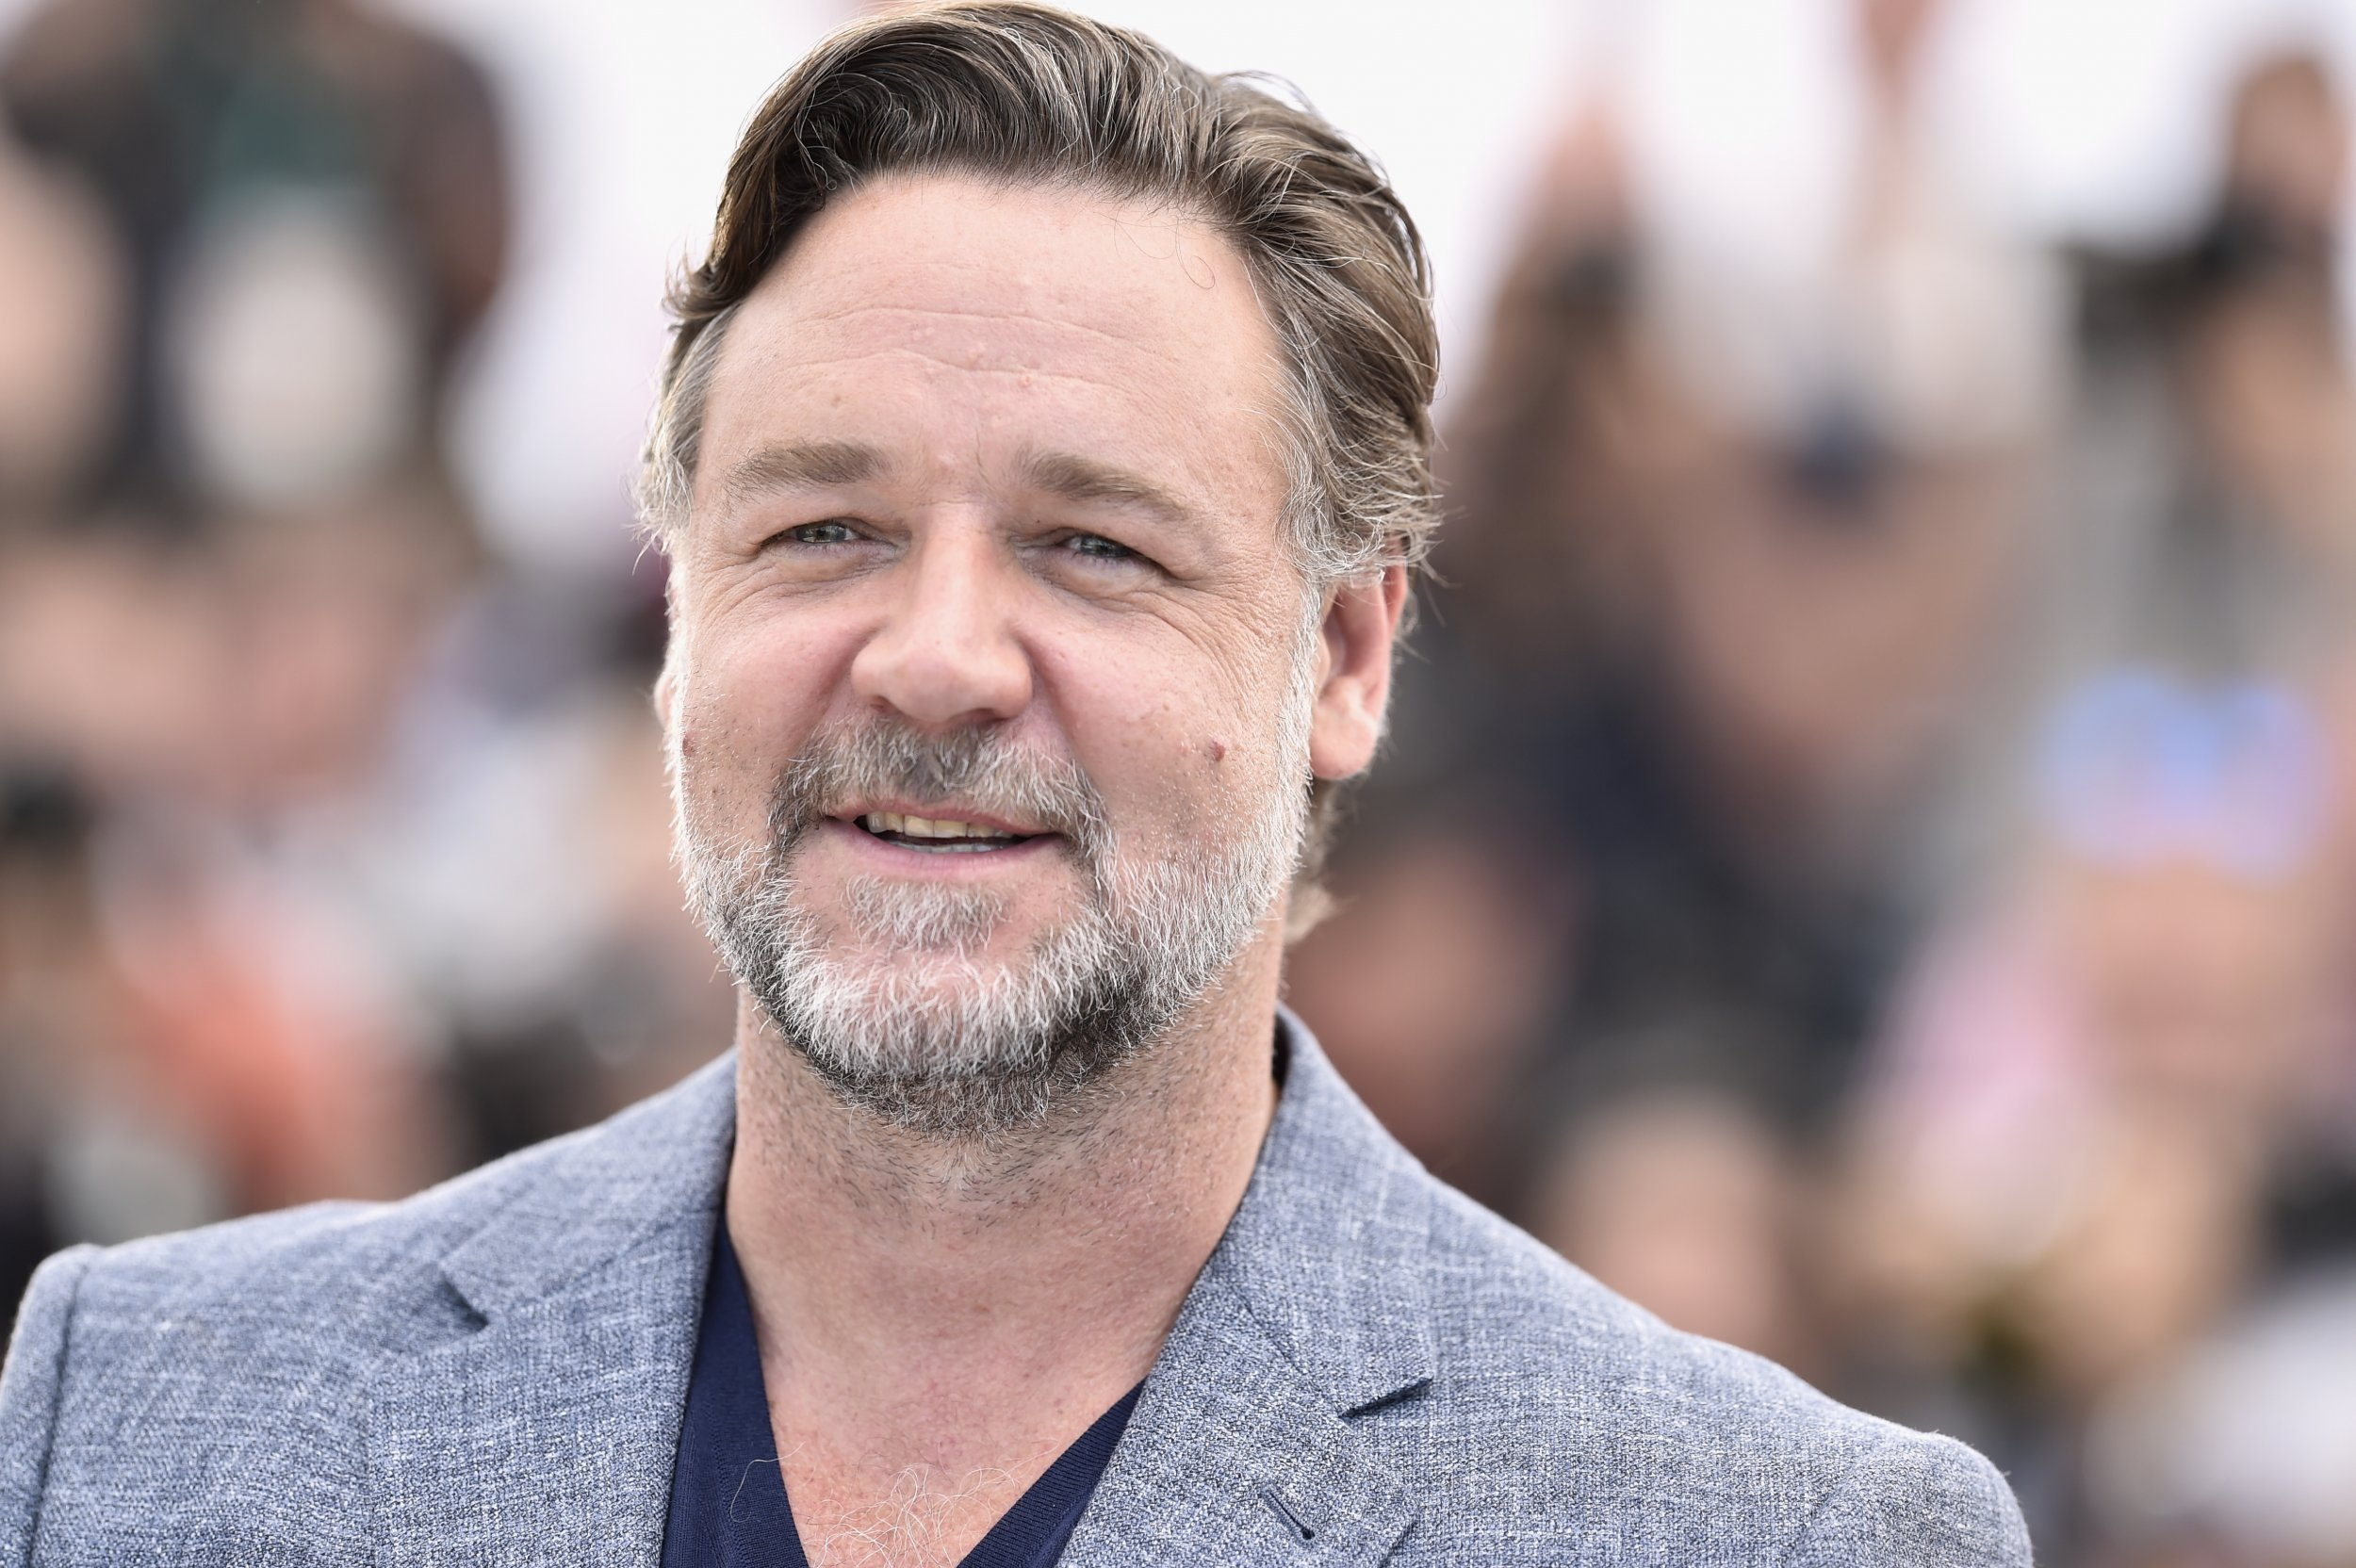 Russell Crowe Slams Academy Over Not Broadcasting All Categories